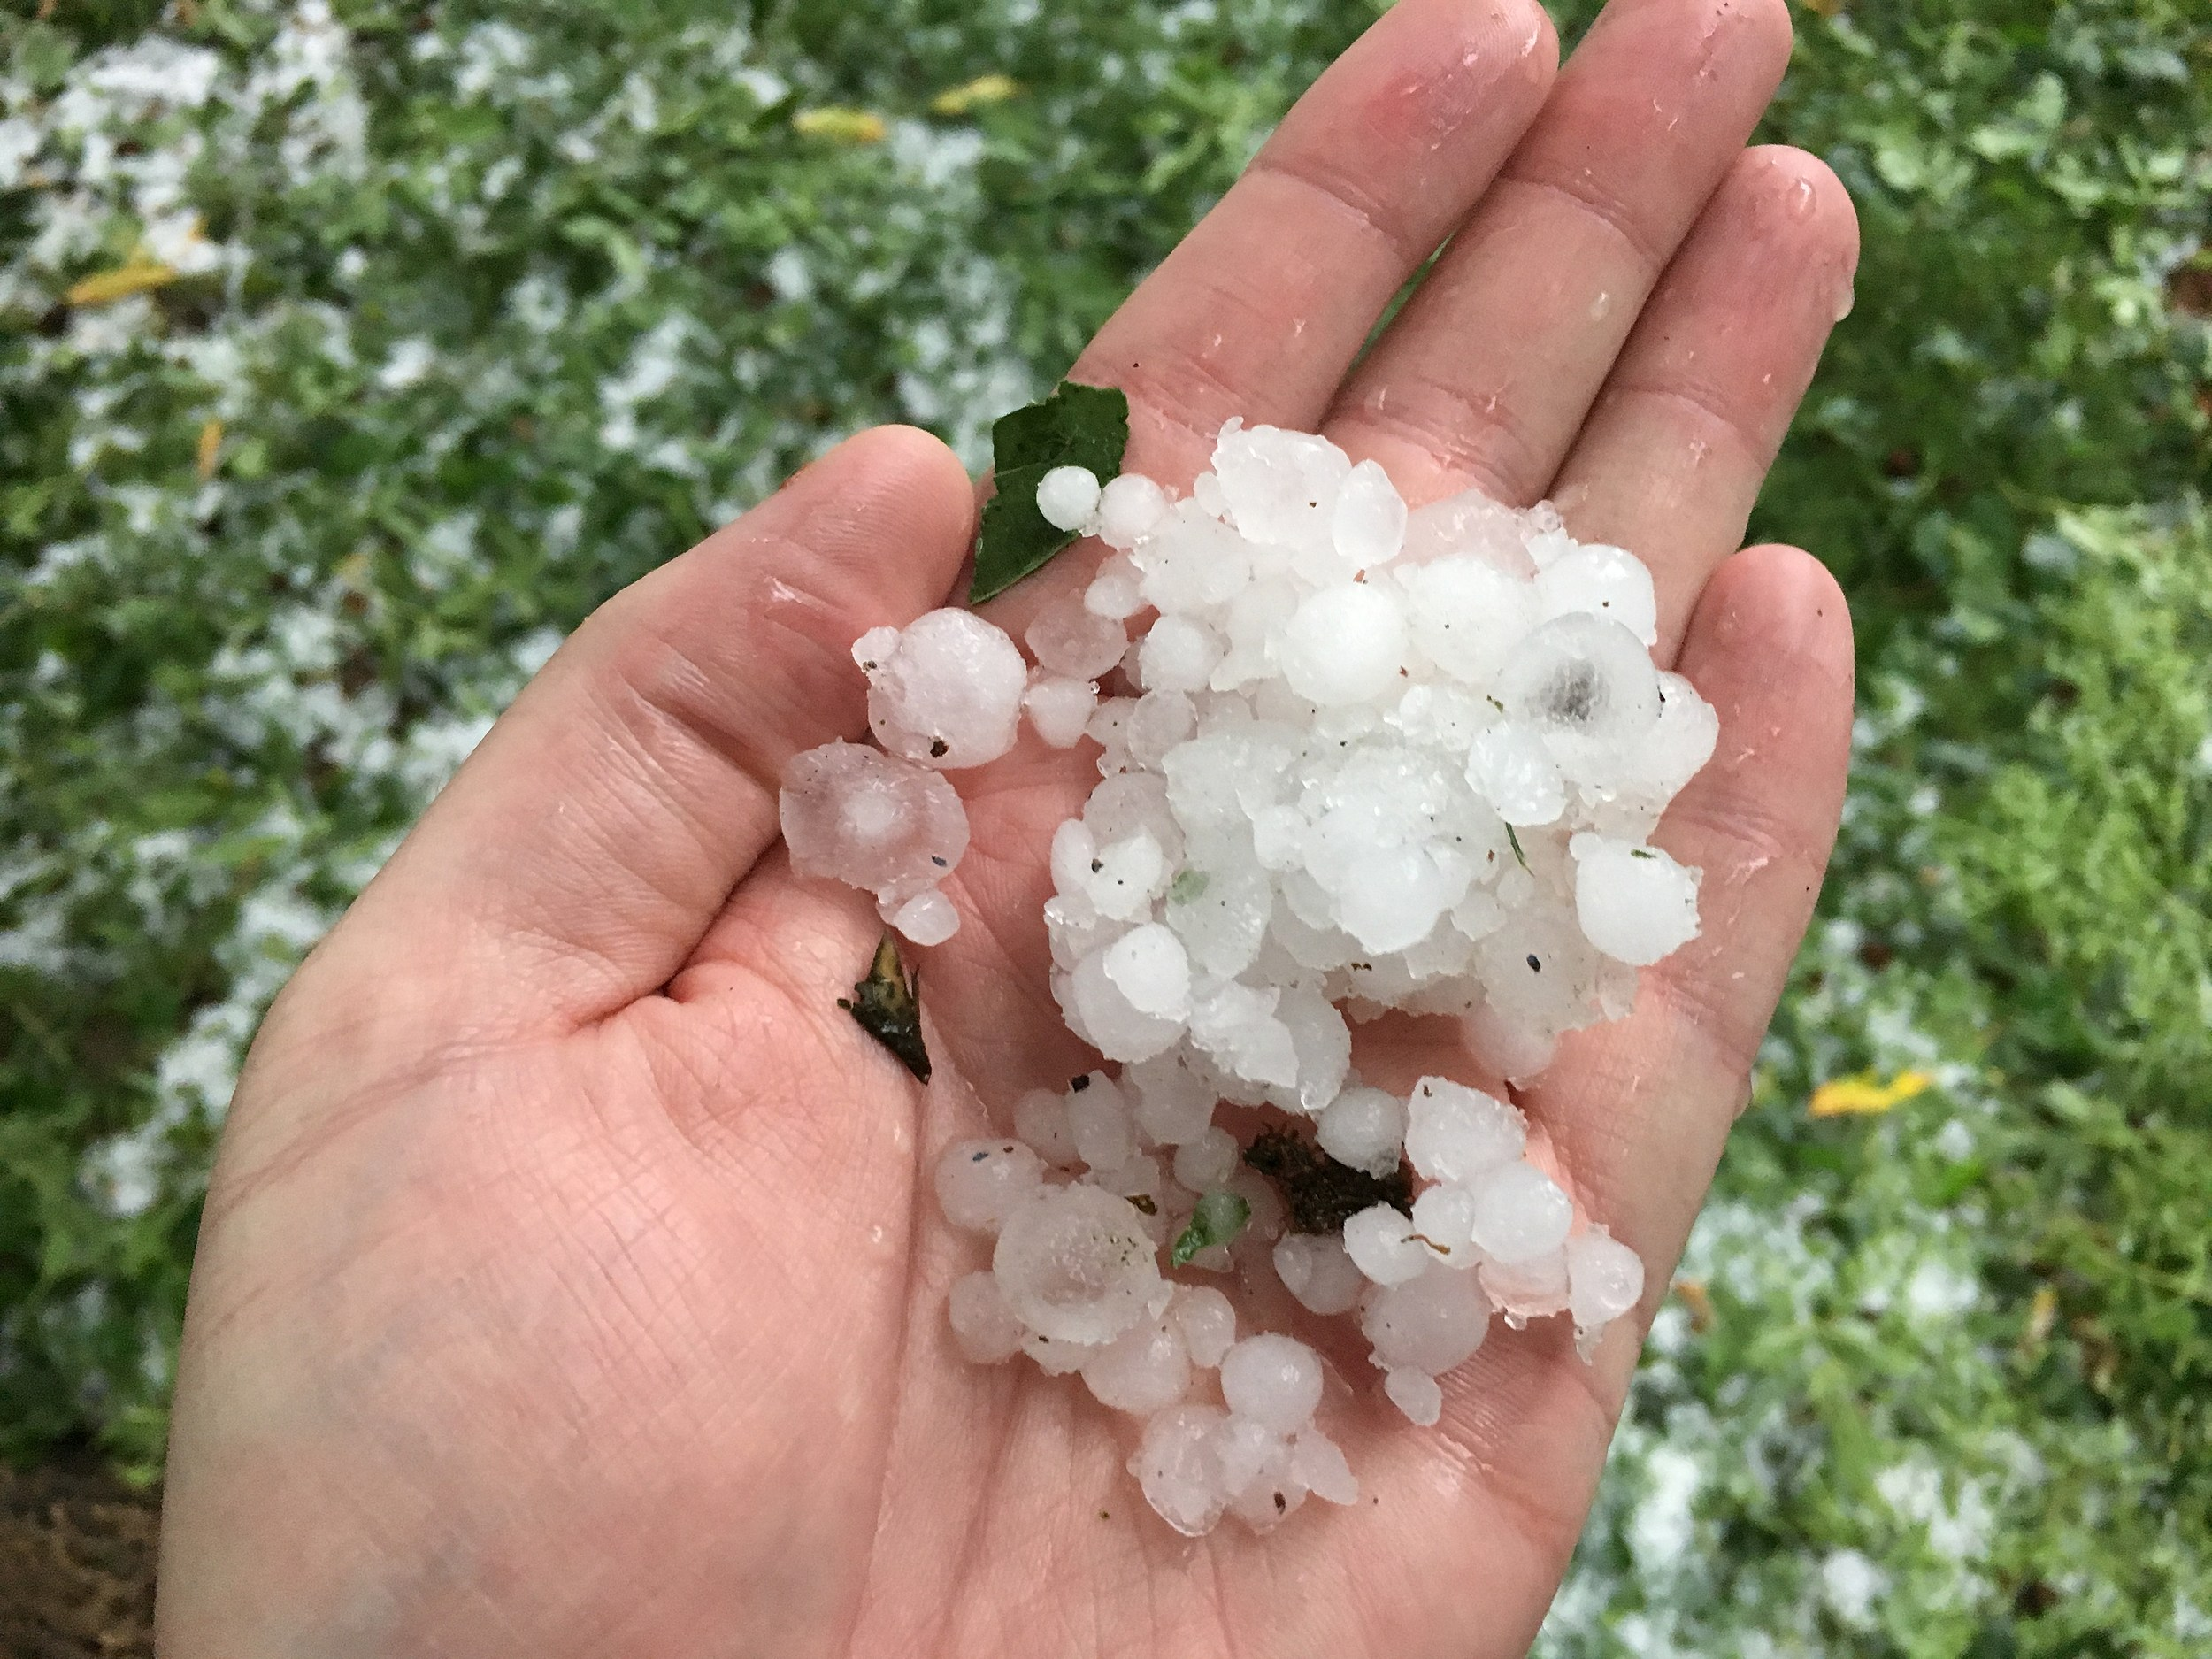 The hail that fell during Thursday's storm in Fort Collins